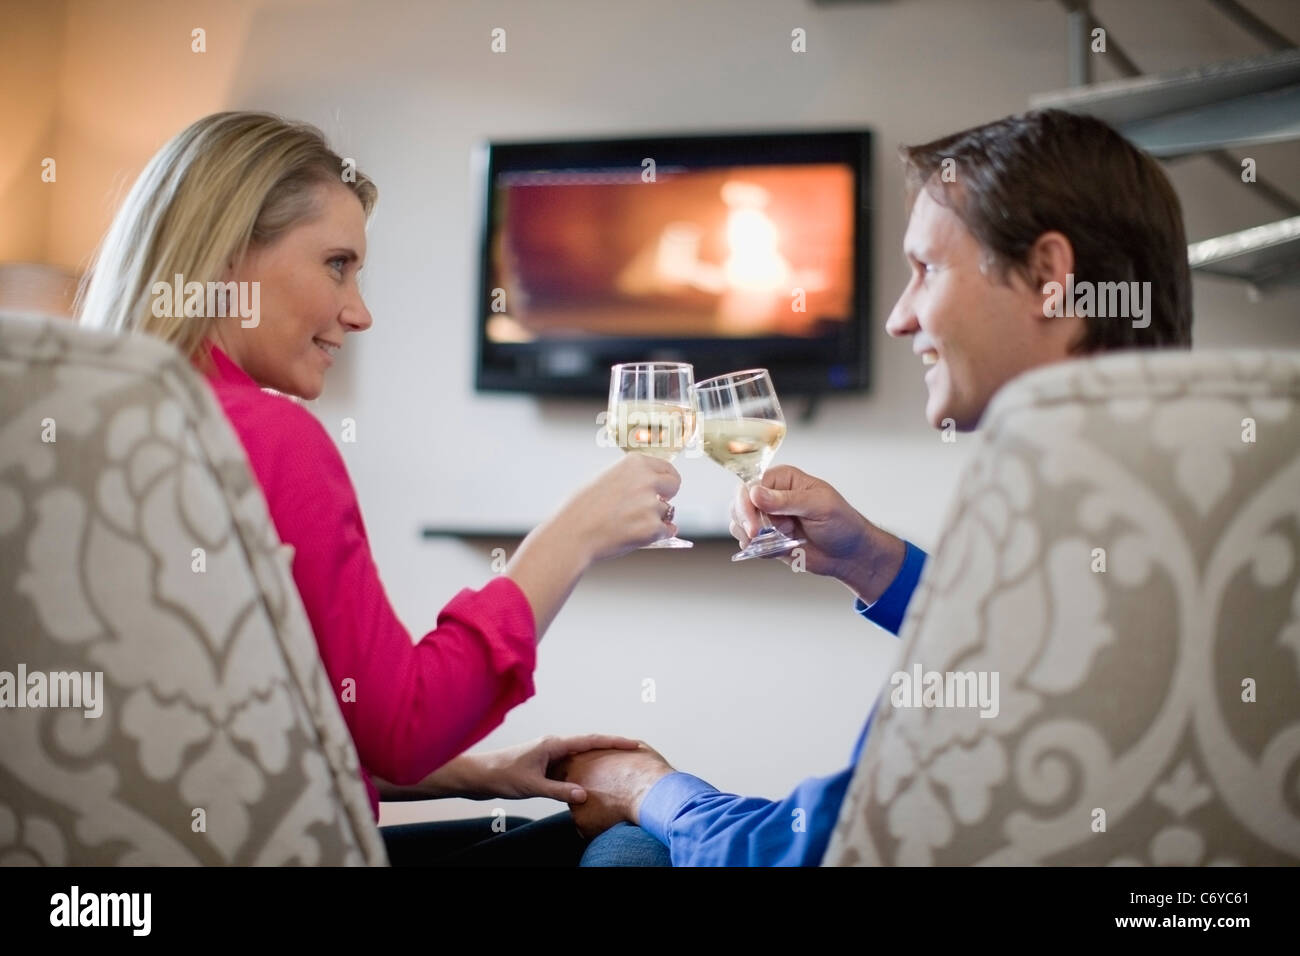 Couple toasting each other - Stock Image